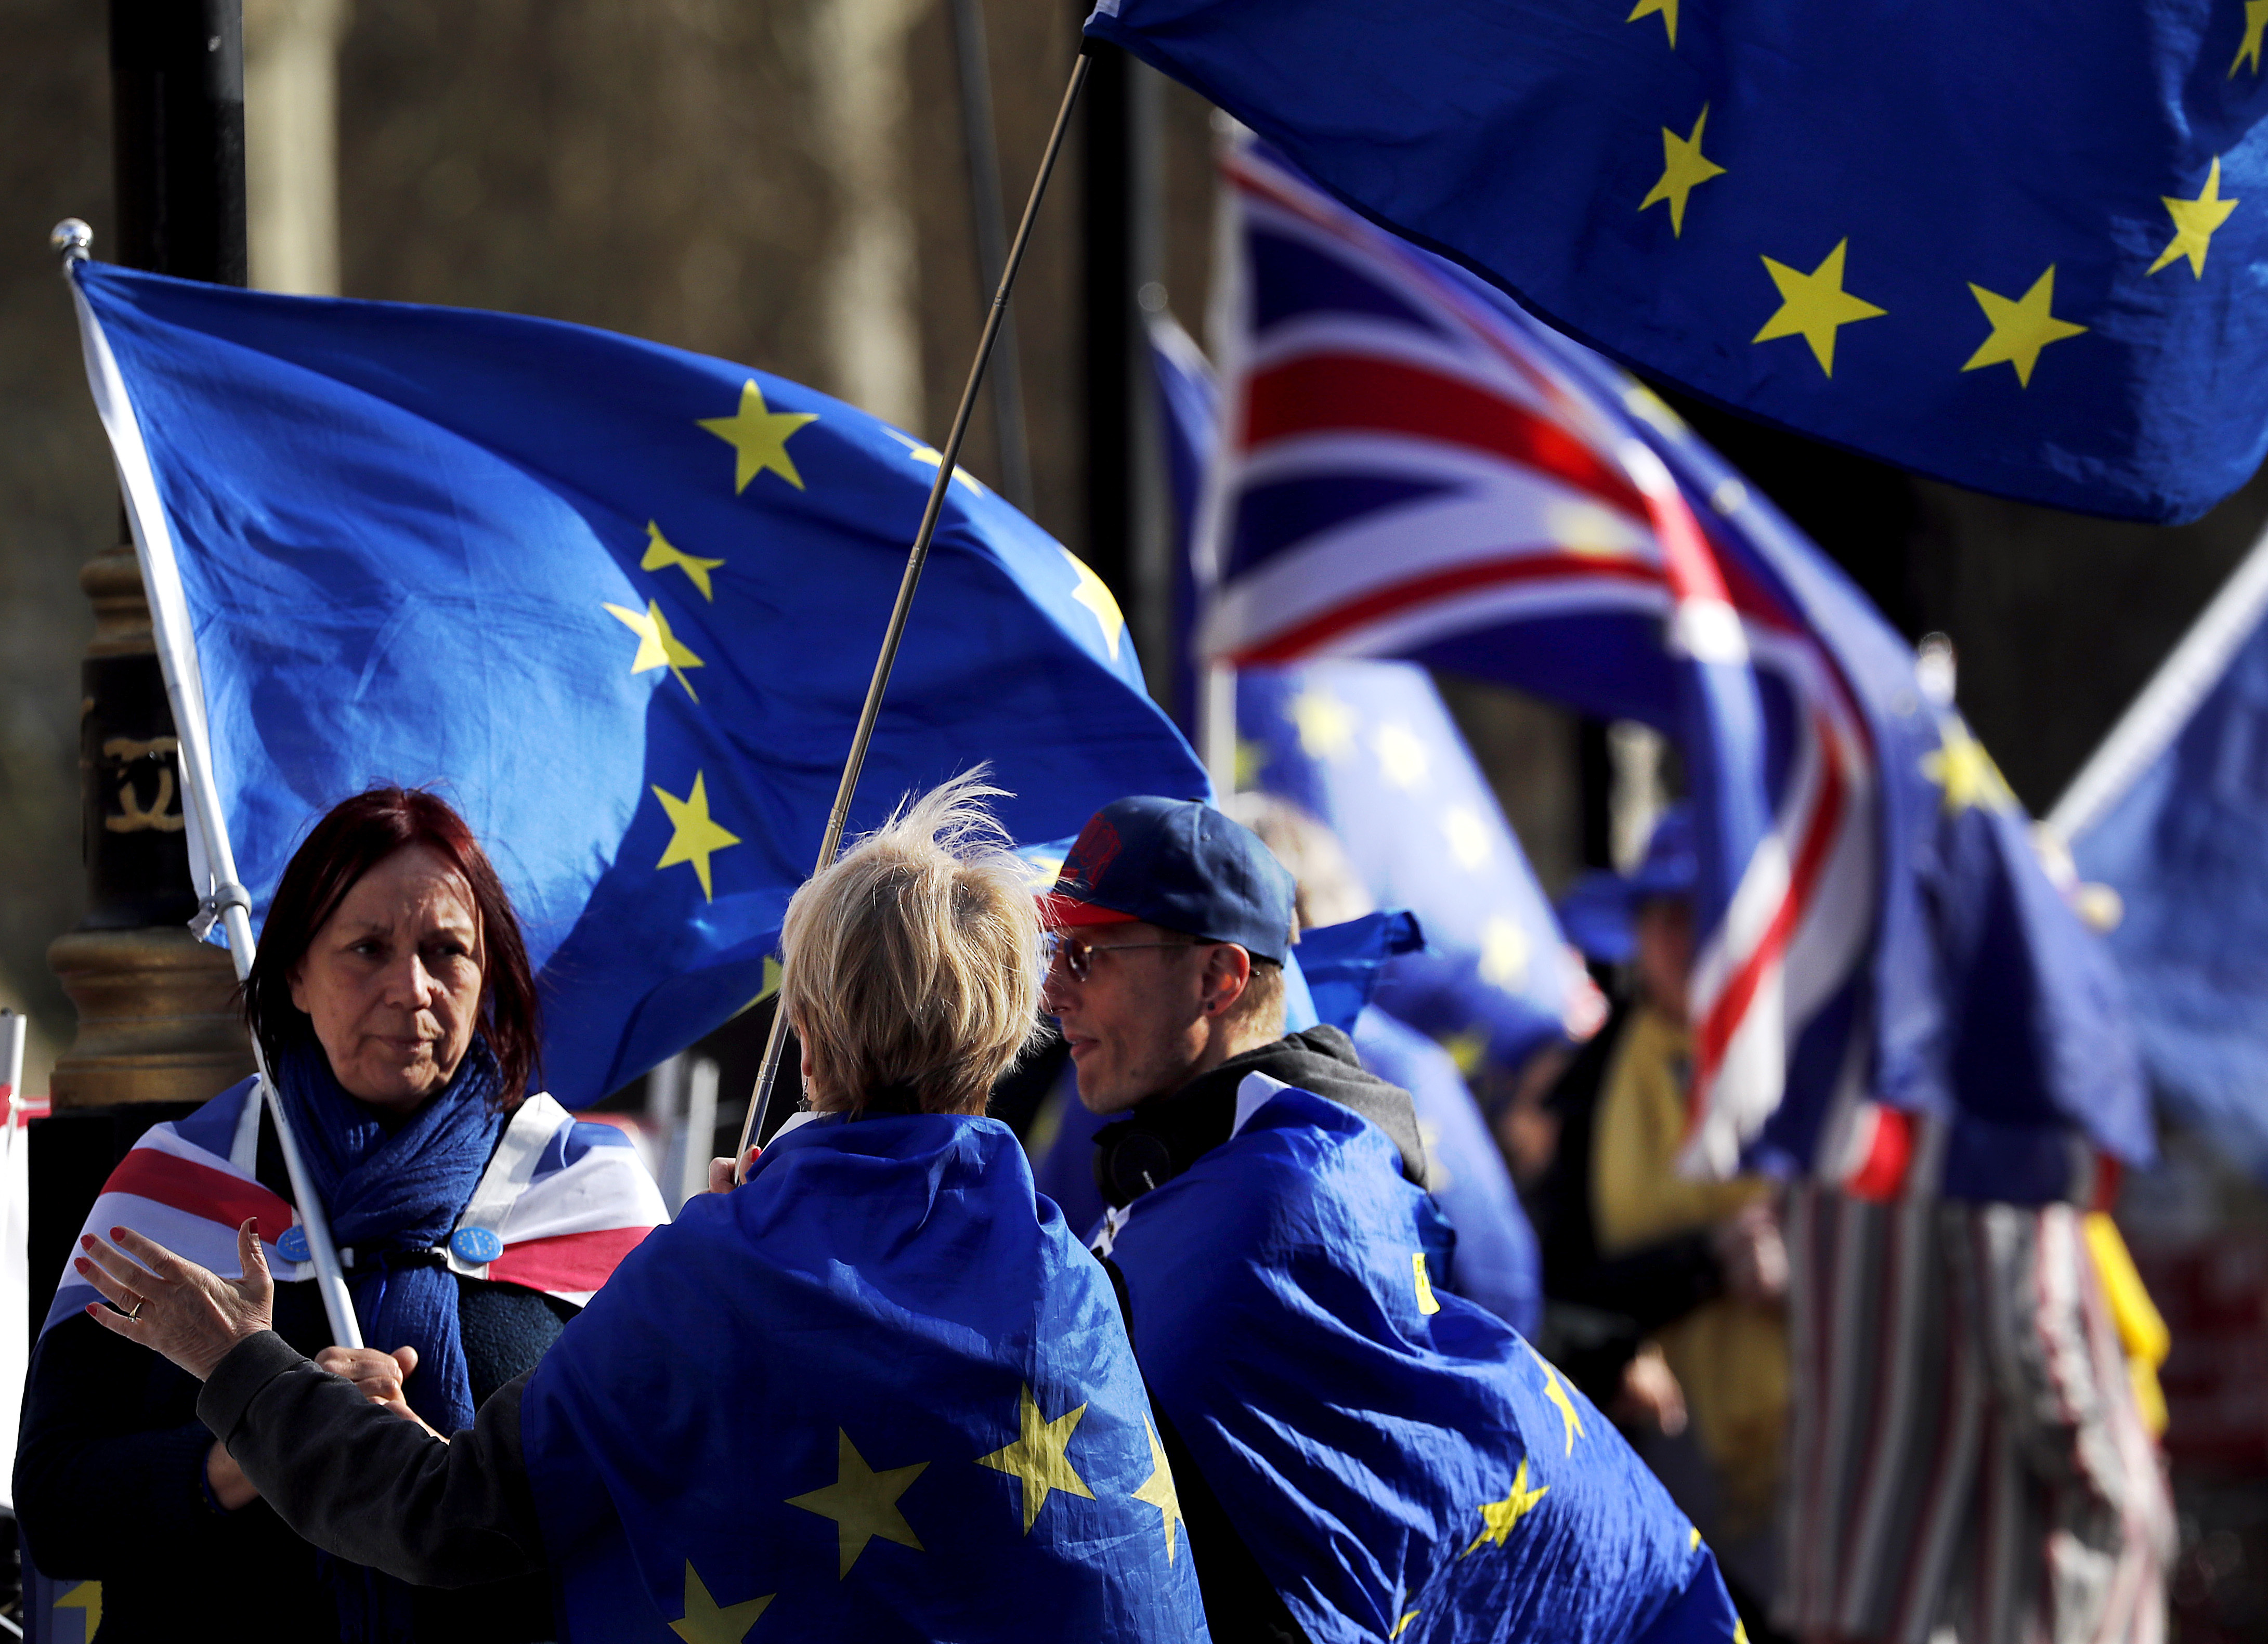 Brexit protesters demonstrate near the House of Parliament in London, Tuesday, March 26, 2019